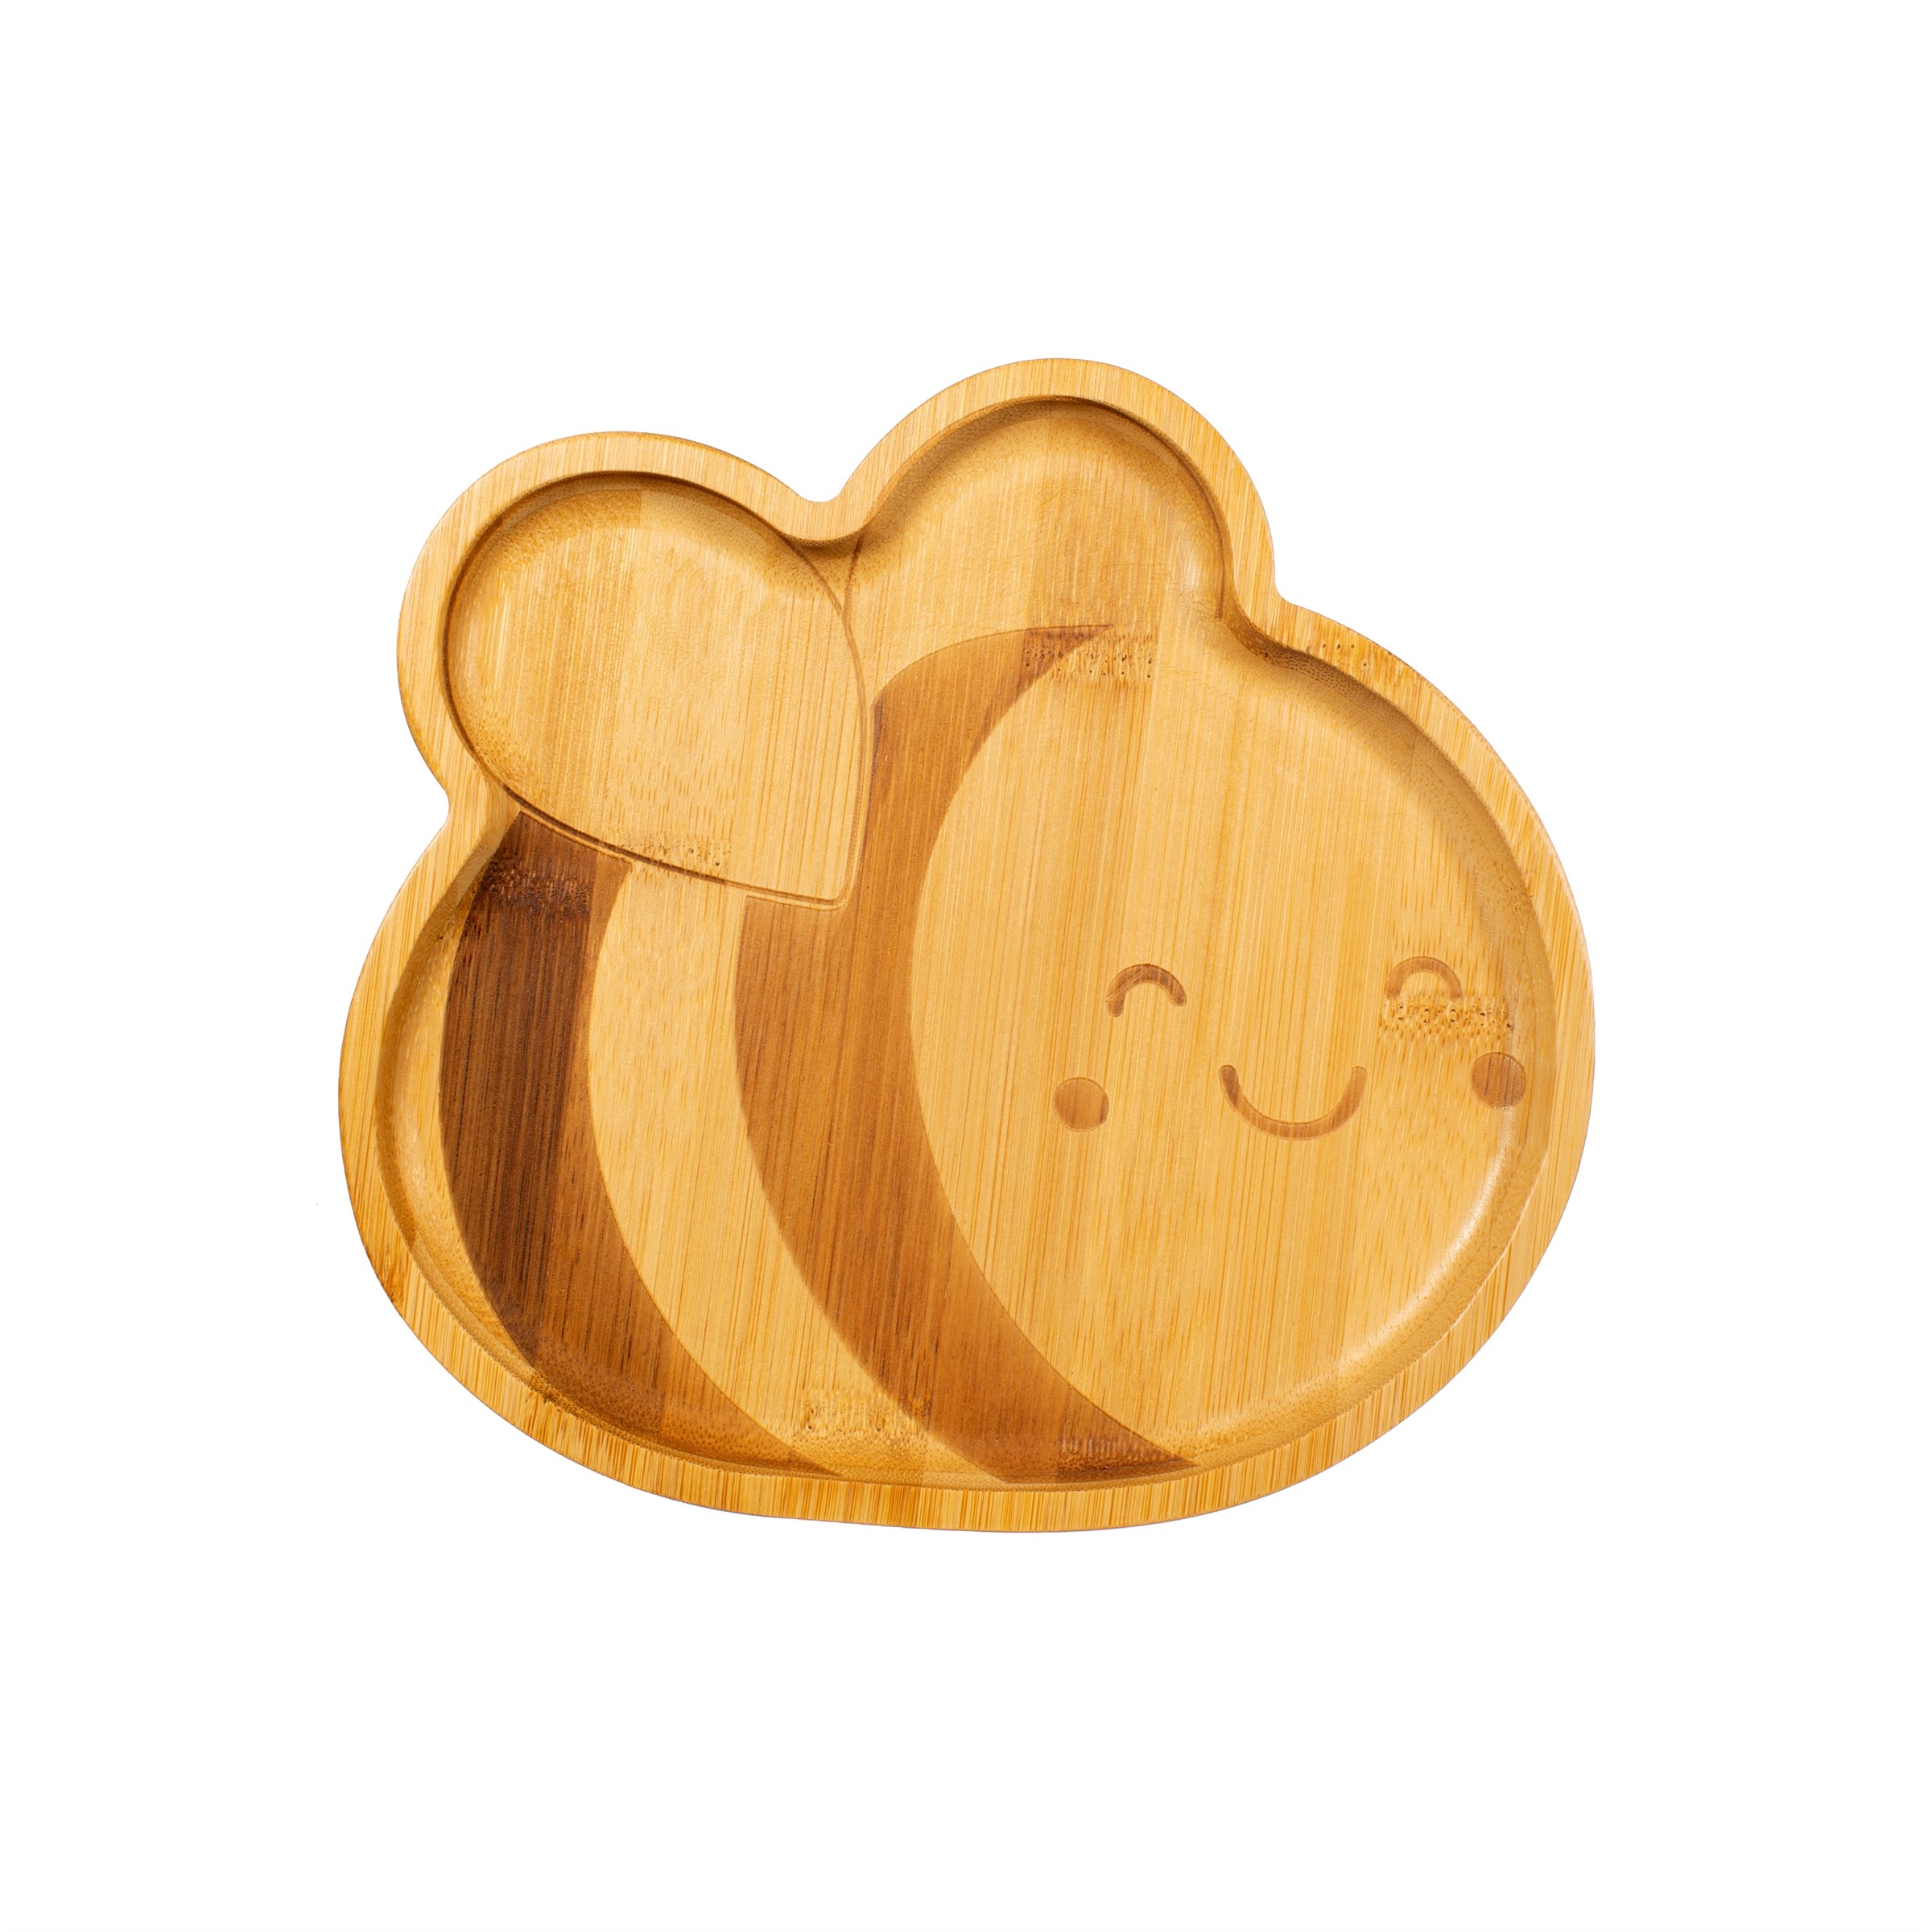 Bamboo bee plate by sass & belle